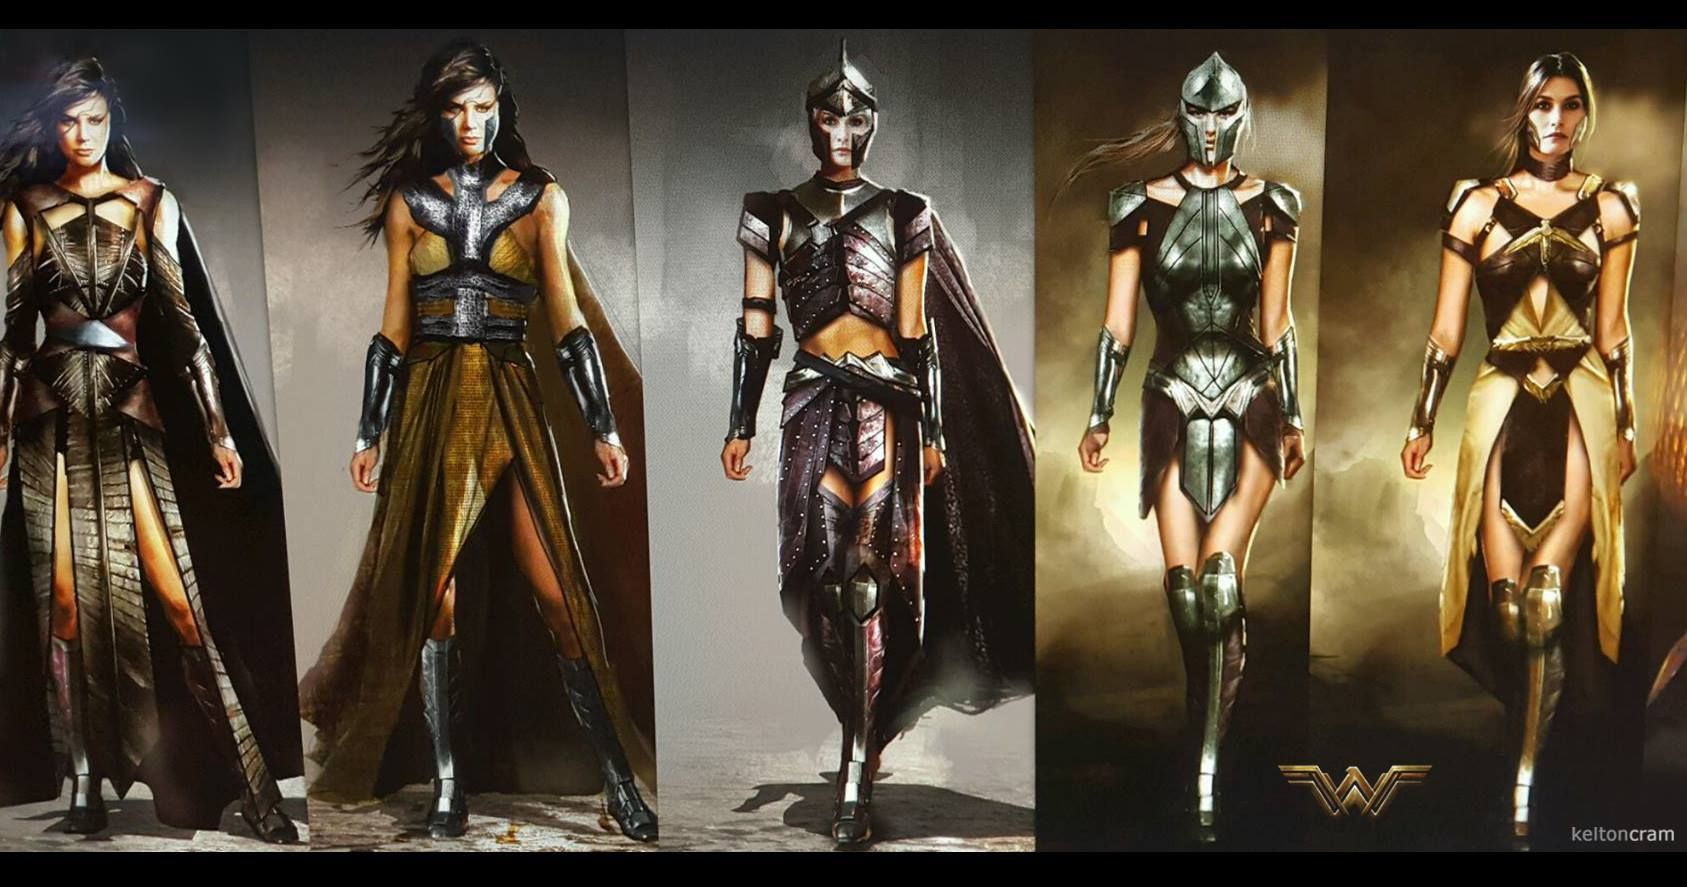 Wonderful Concept Art Of Wonder Woman And The Amazons Wonder Woman Wonder Woman Art Wonder Woman Cosplay